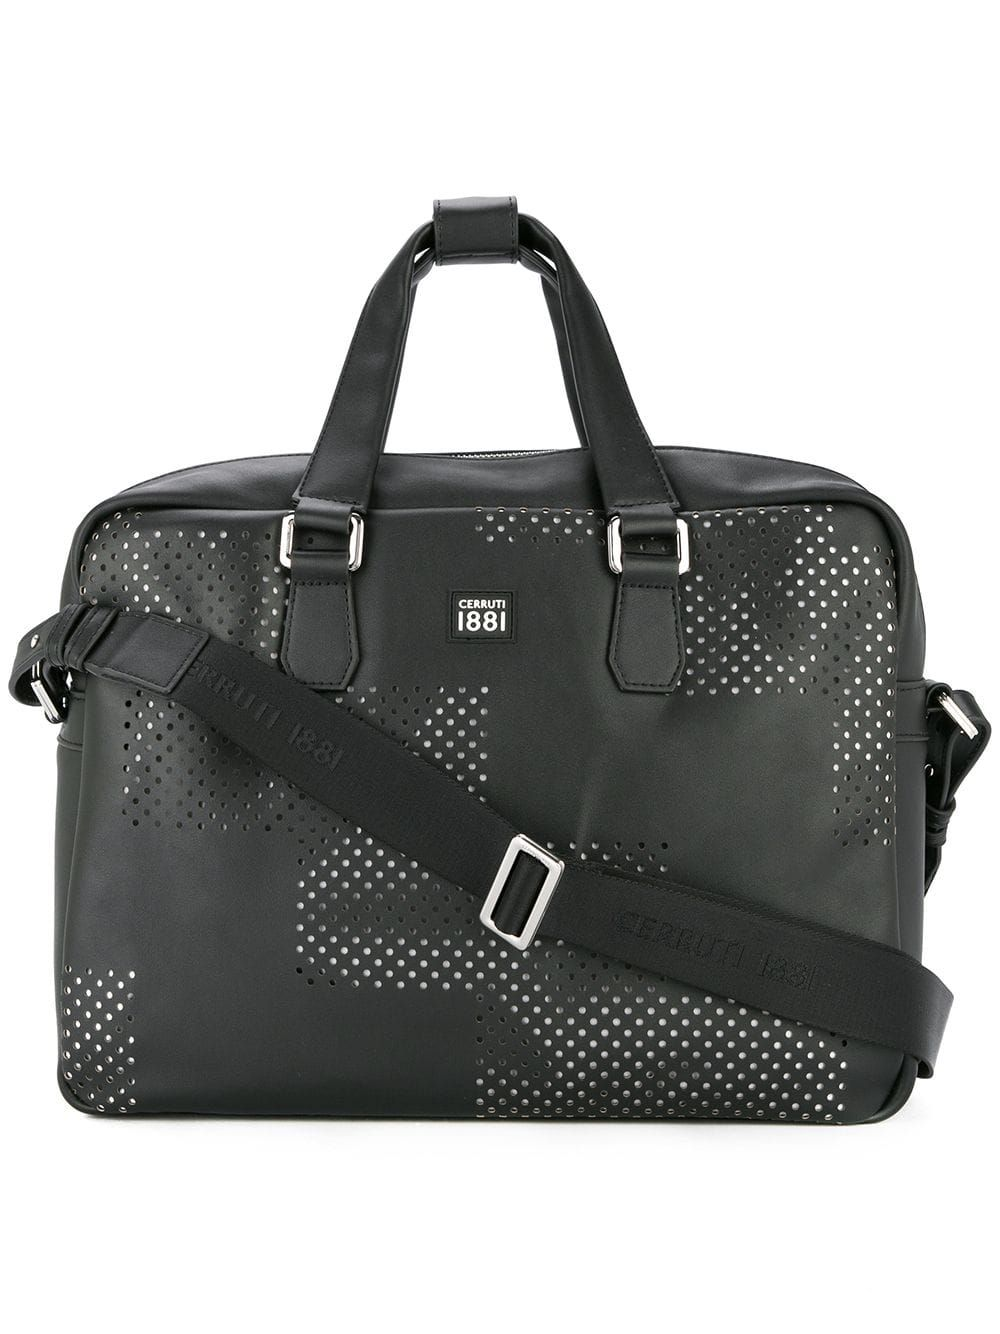 24c6ae51f04 Cerruti 1881 punch hole detailed briefcase - Black in 2019 ...